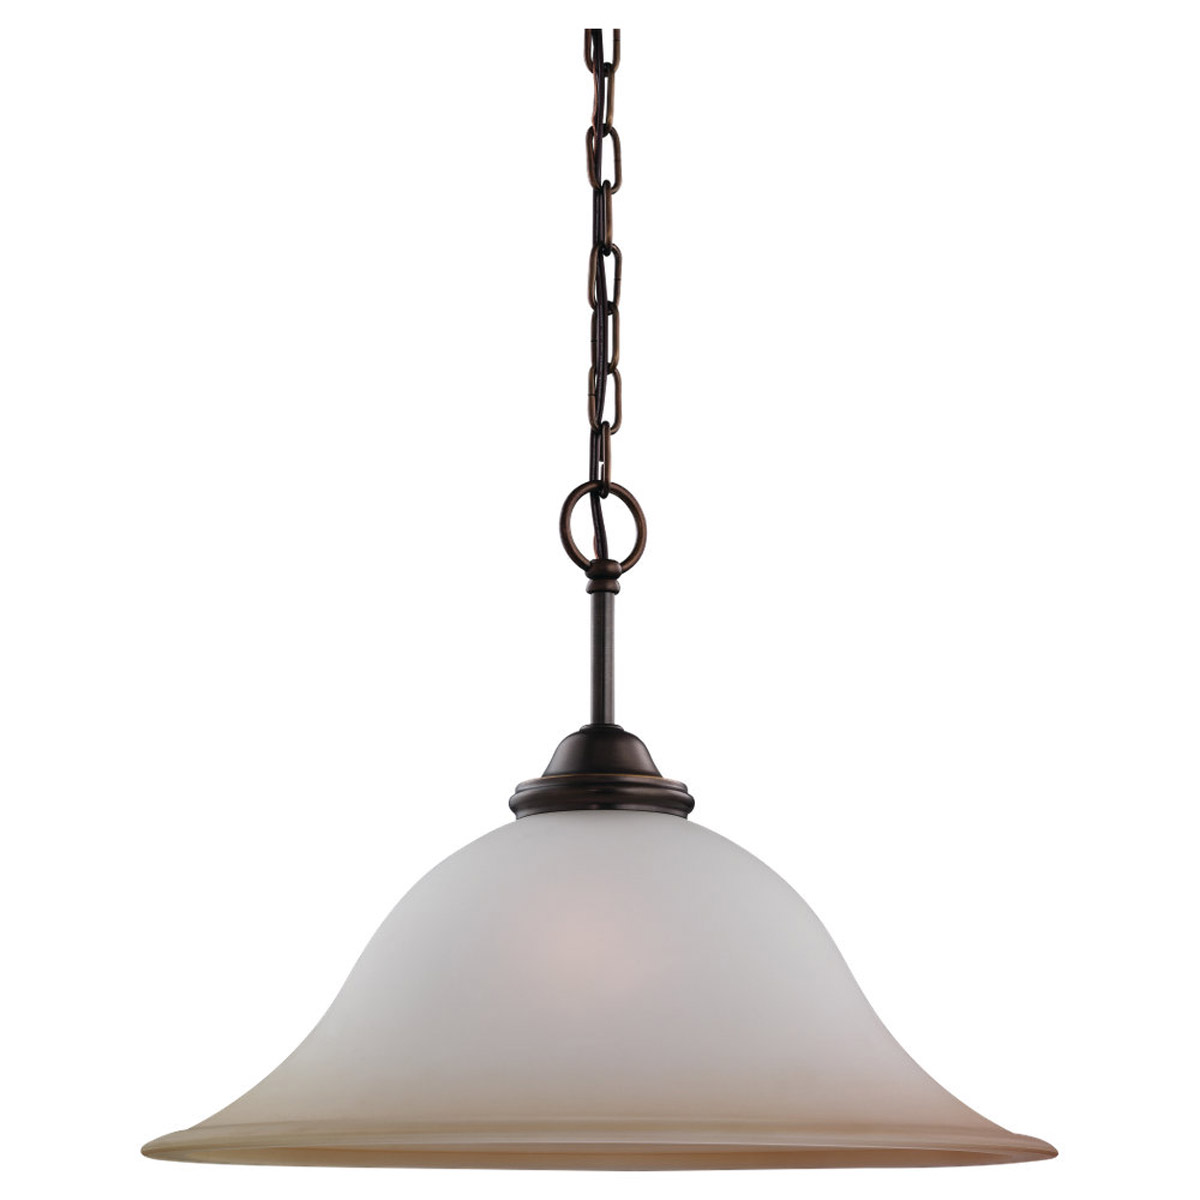 Sea Gull Lighting Rialto 1 Light Pendant in Russet Bronze 65360-829